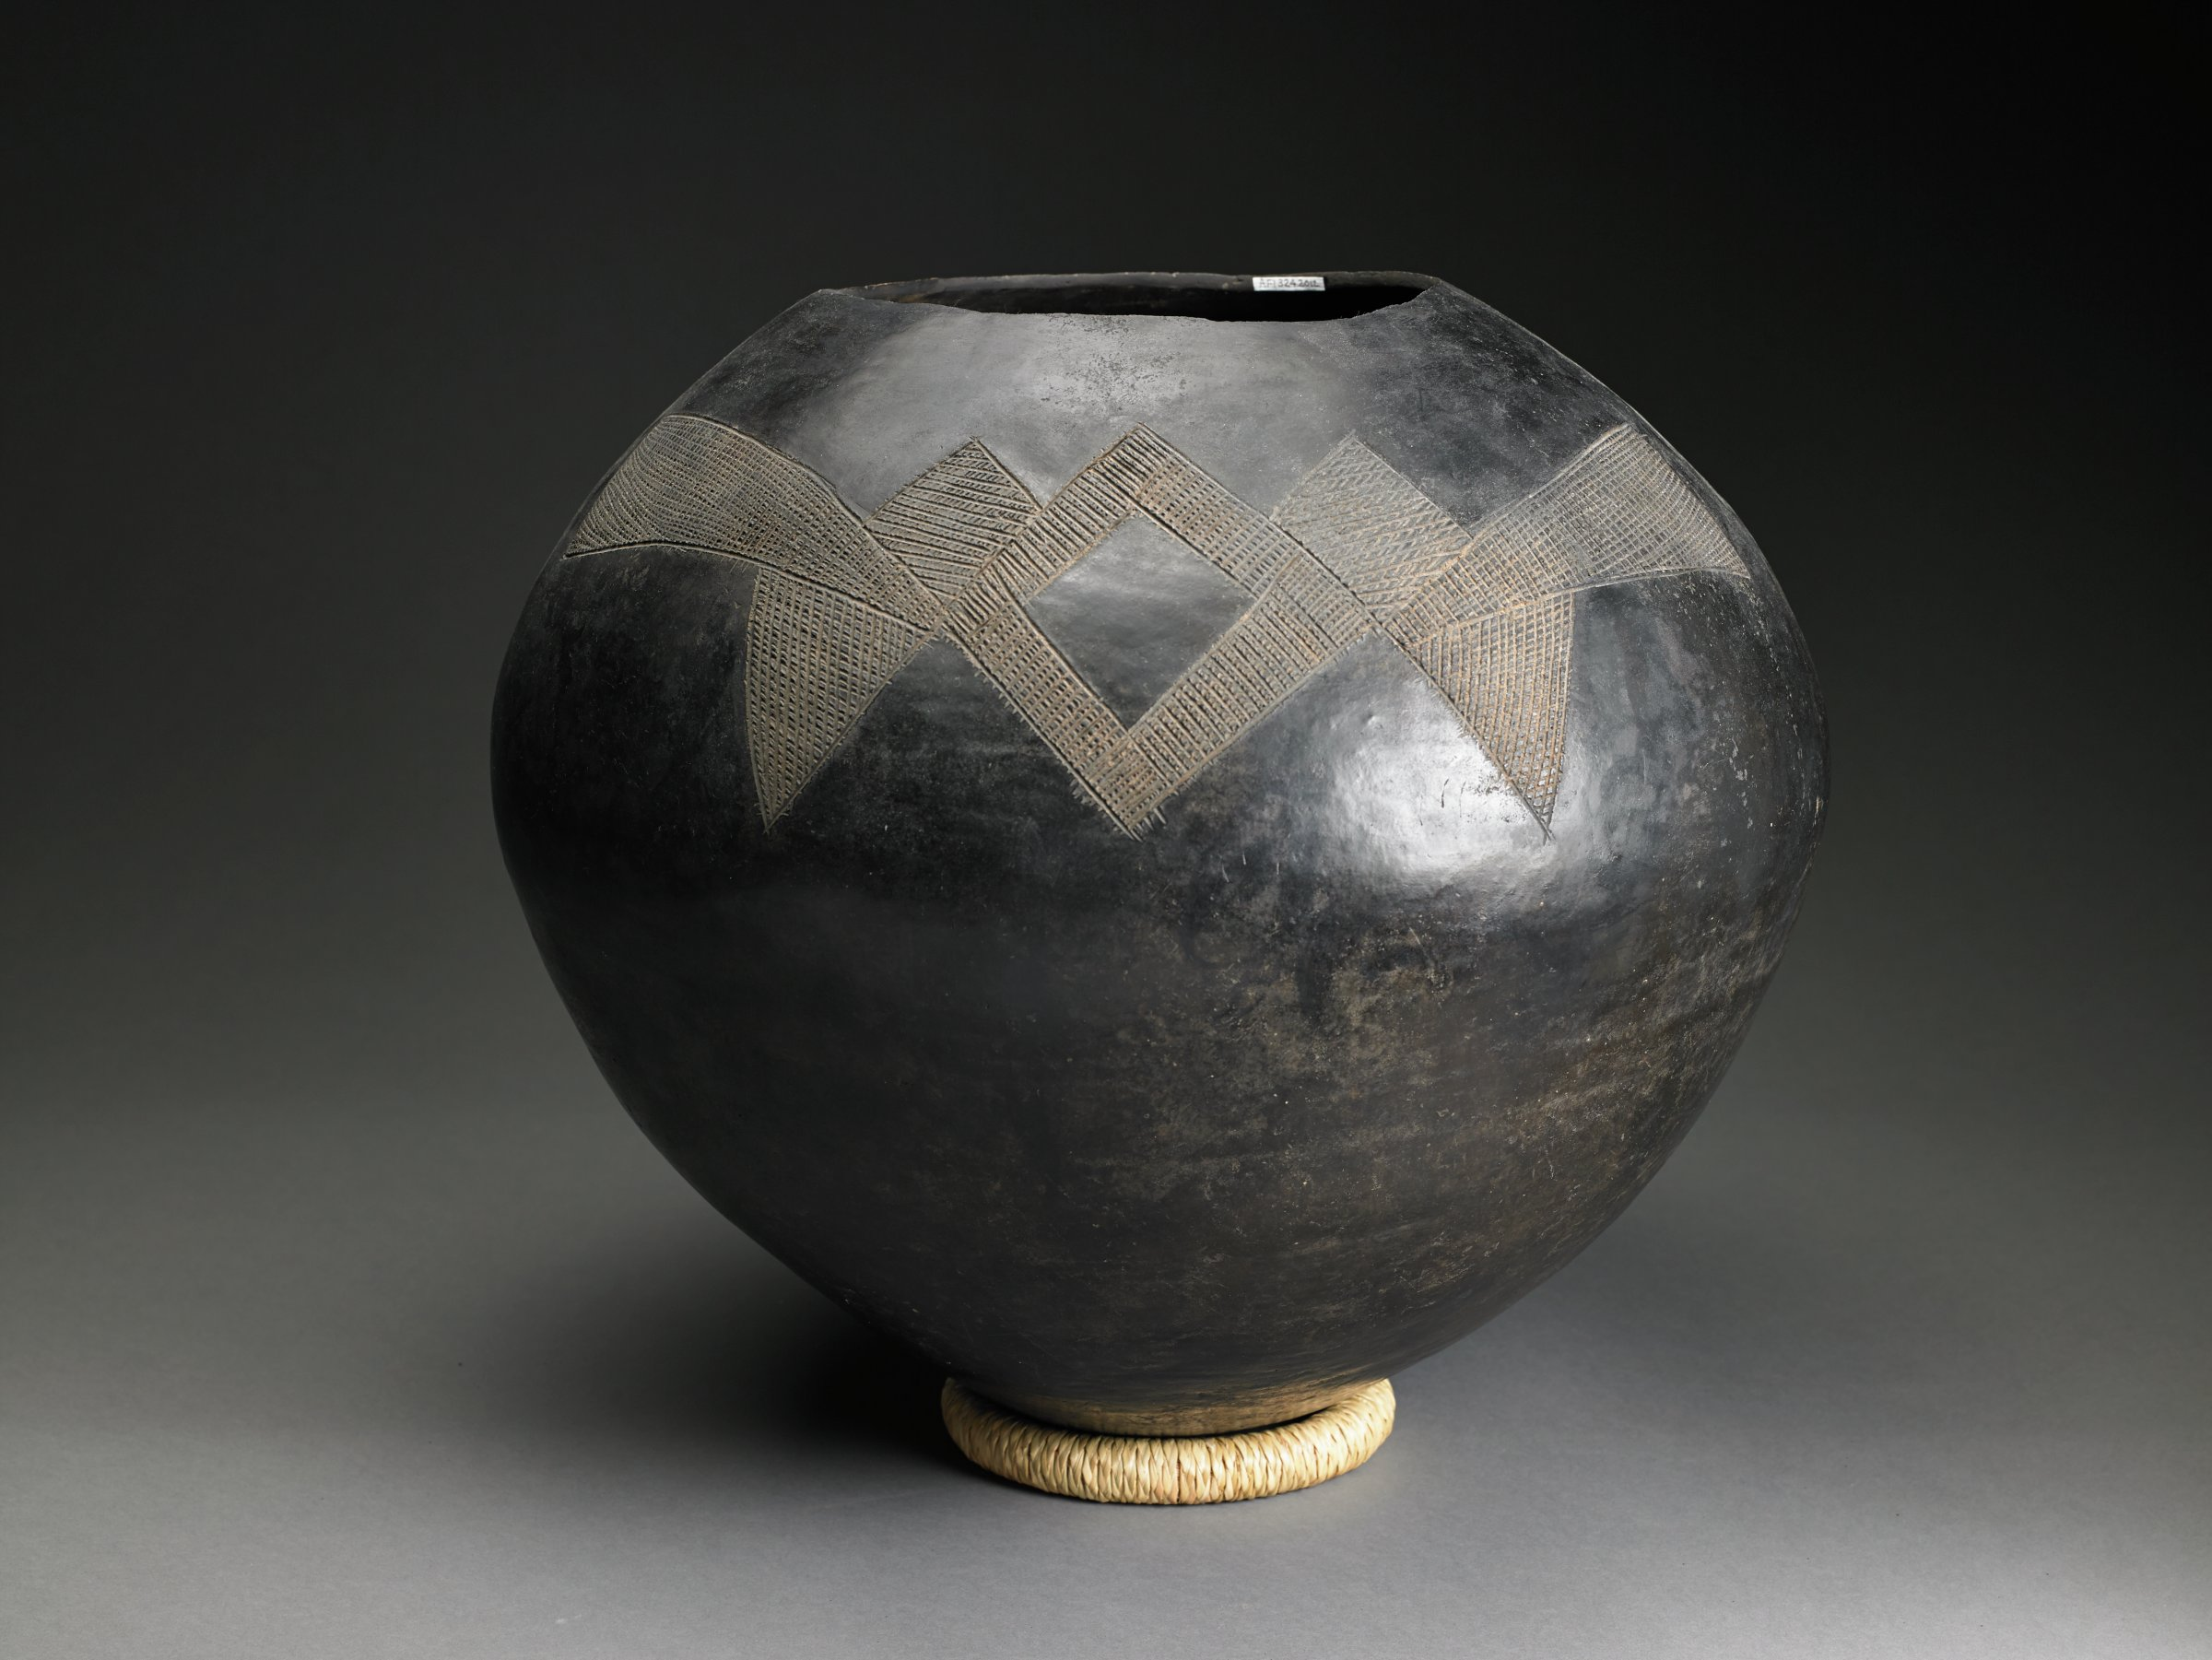 Round, black vessel has round mouth with no rim.  Horizontal geometric designs incised into shoulder.